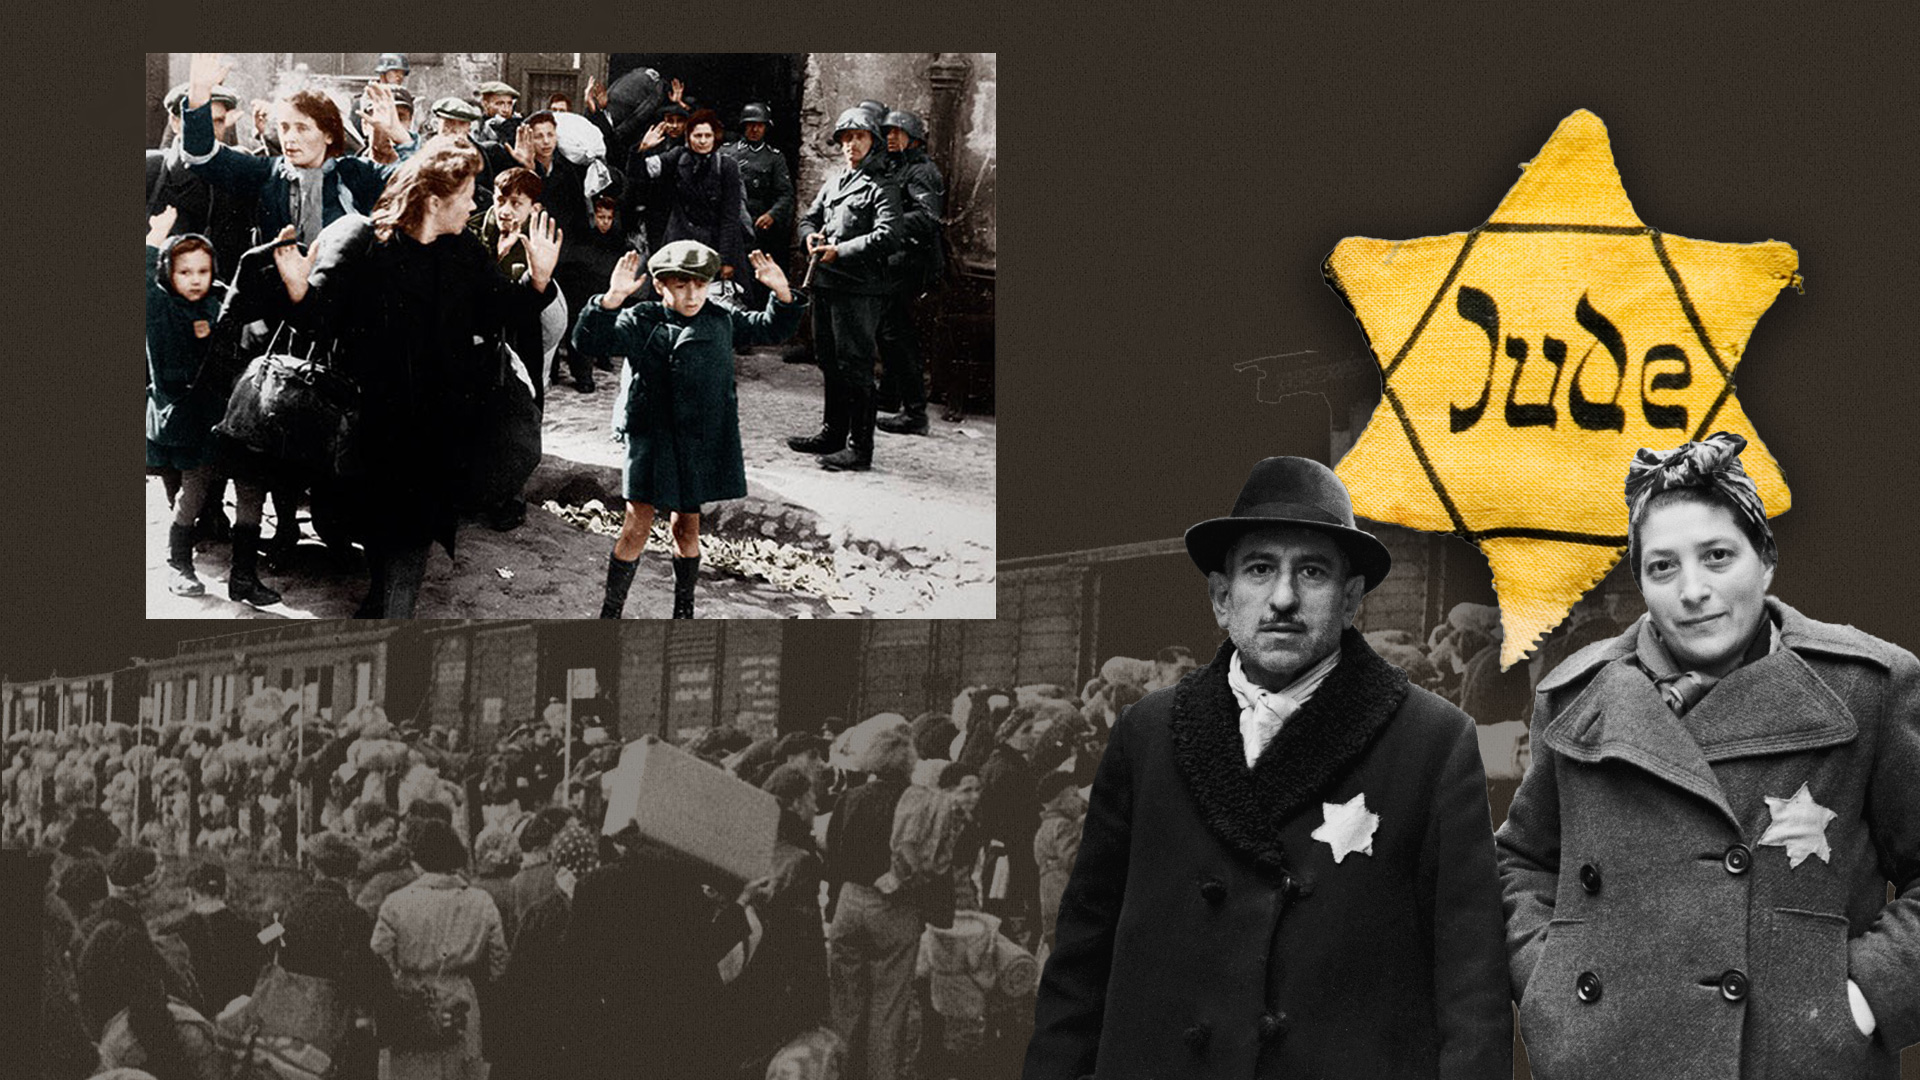 Jews being forced from their home land before the Holocaust